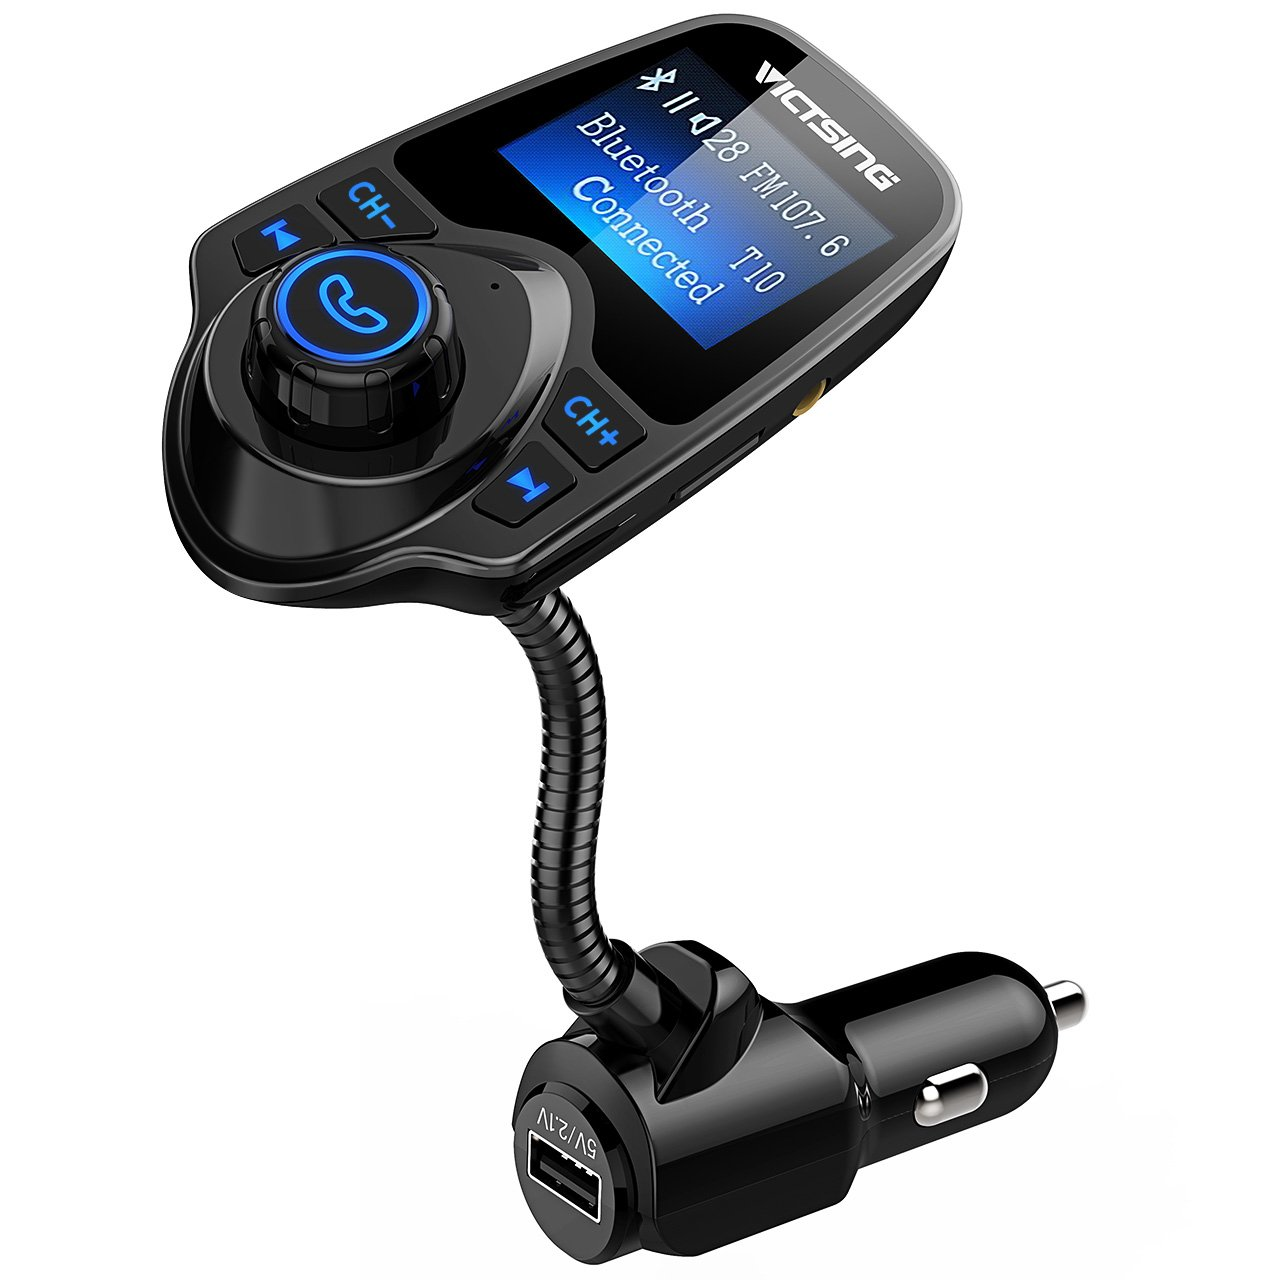 VicTsing Bluetooth FM Transmitter, Wireless in-Car Radio Transmitter Adapter/w USB Car Charger AUX Input 1.44 Inch Display TF Card Slot-Pure Black